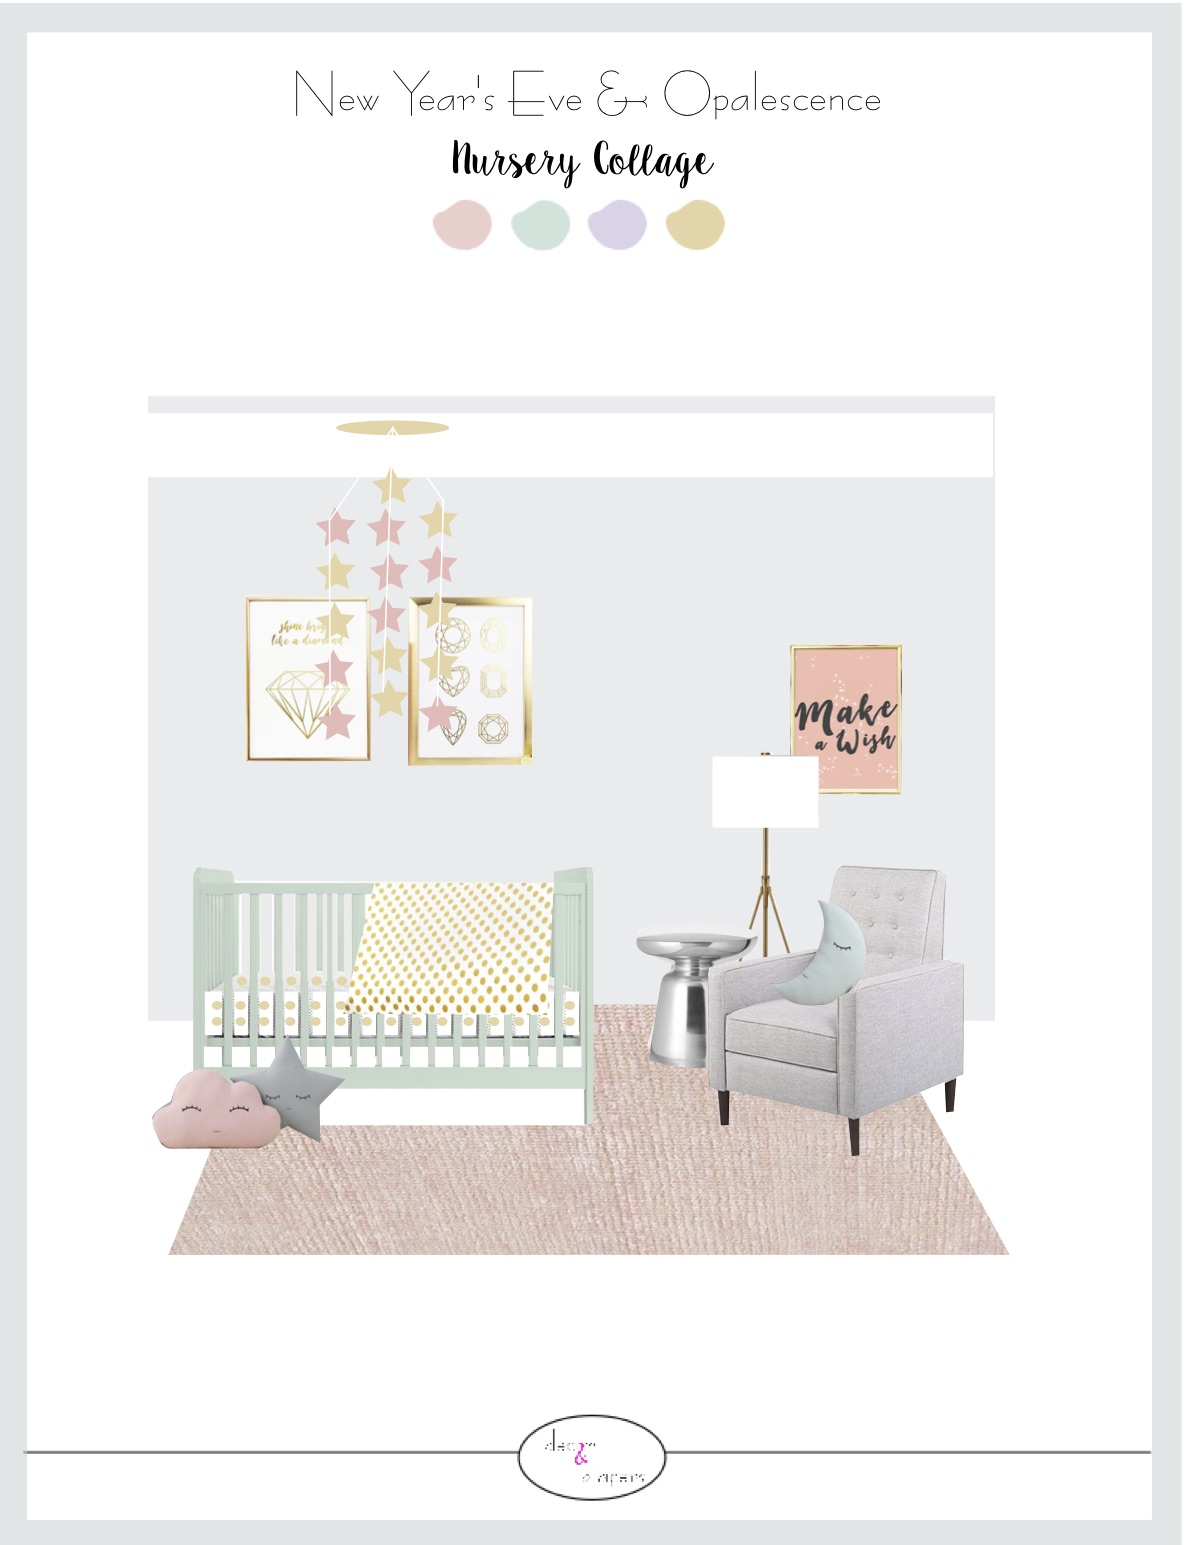 20181231 NYE Nursery- Collage.jpg